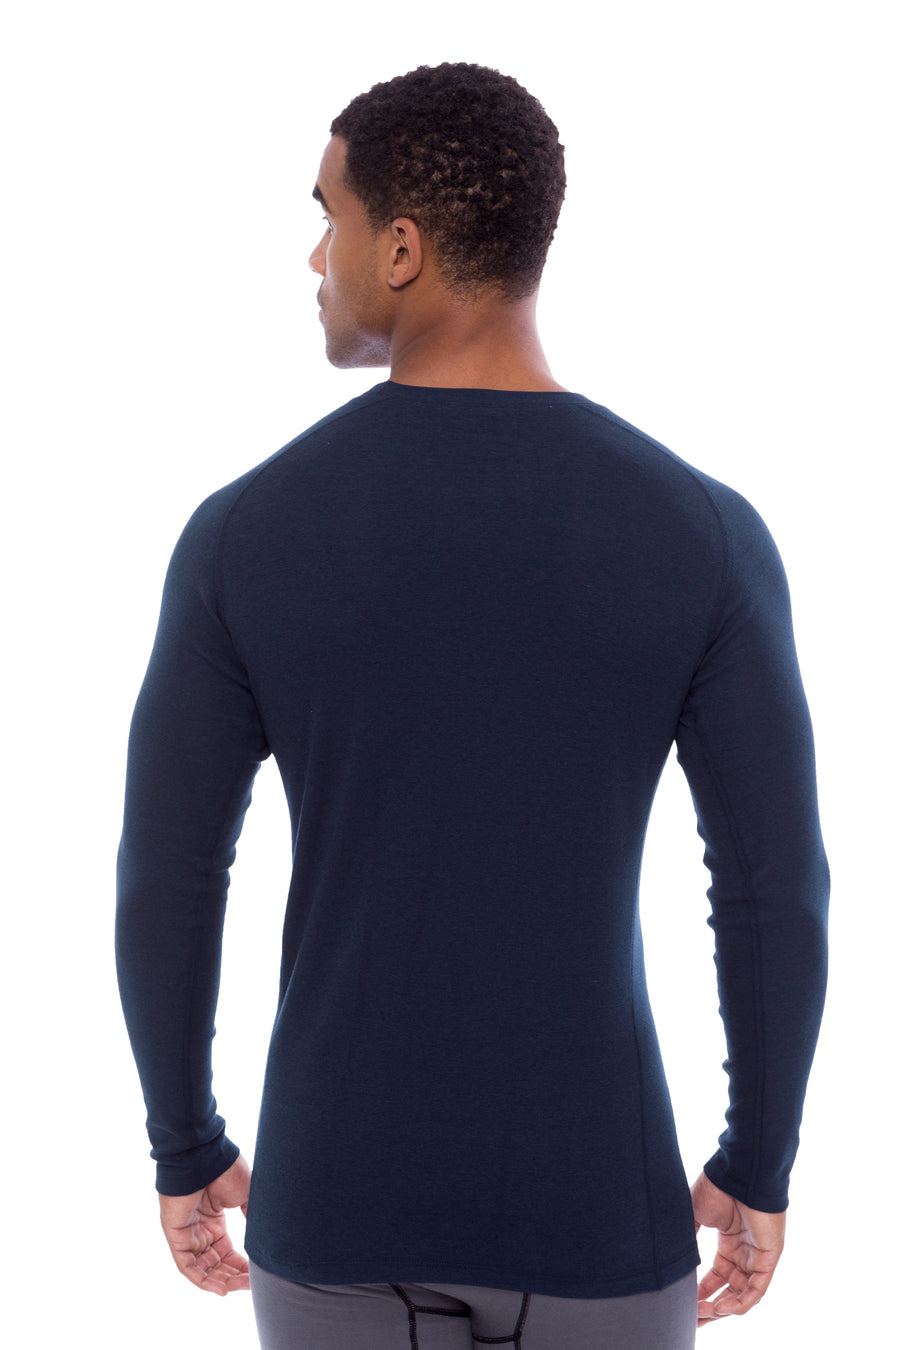 Dirann - Men's Bamboo Viscose Thermal Layer Top - TexereSilk